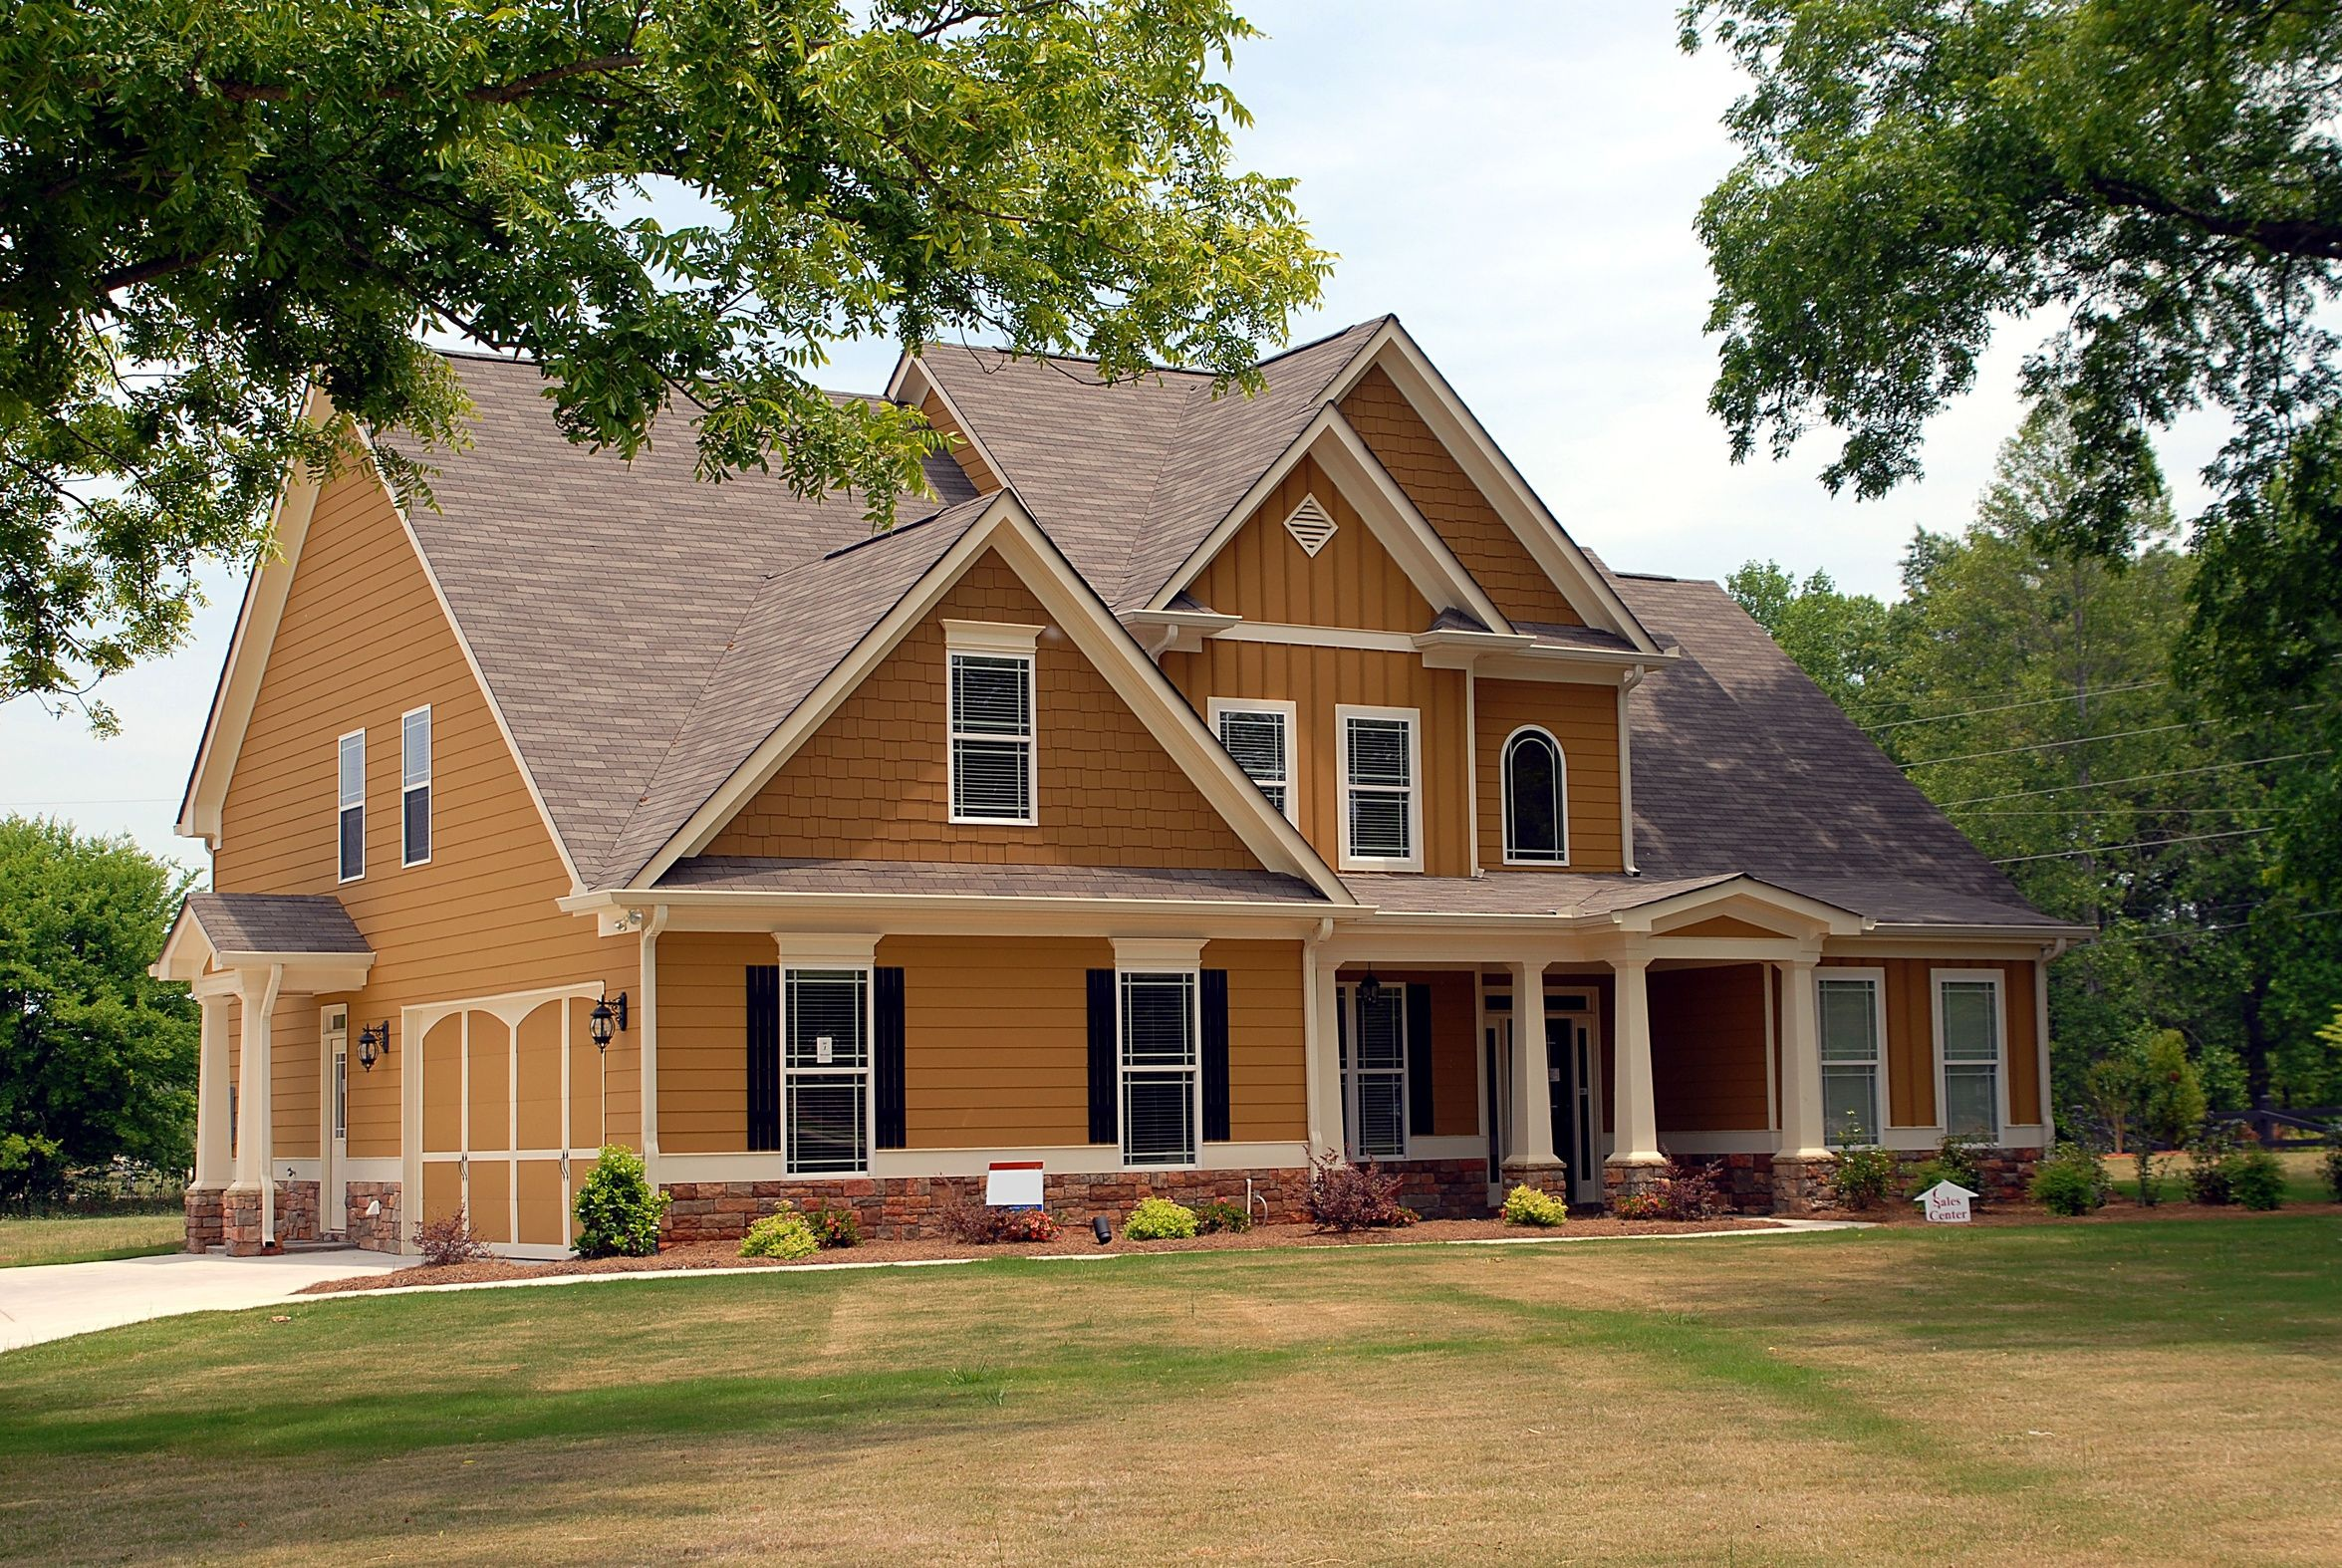 Brown exterior house paint colors looking for professional house painting in stamford ct - Exterior painting vancouver property ...